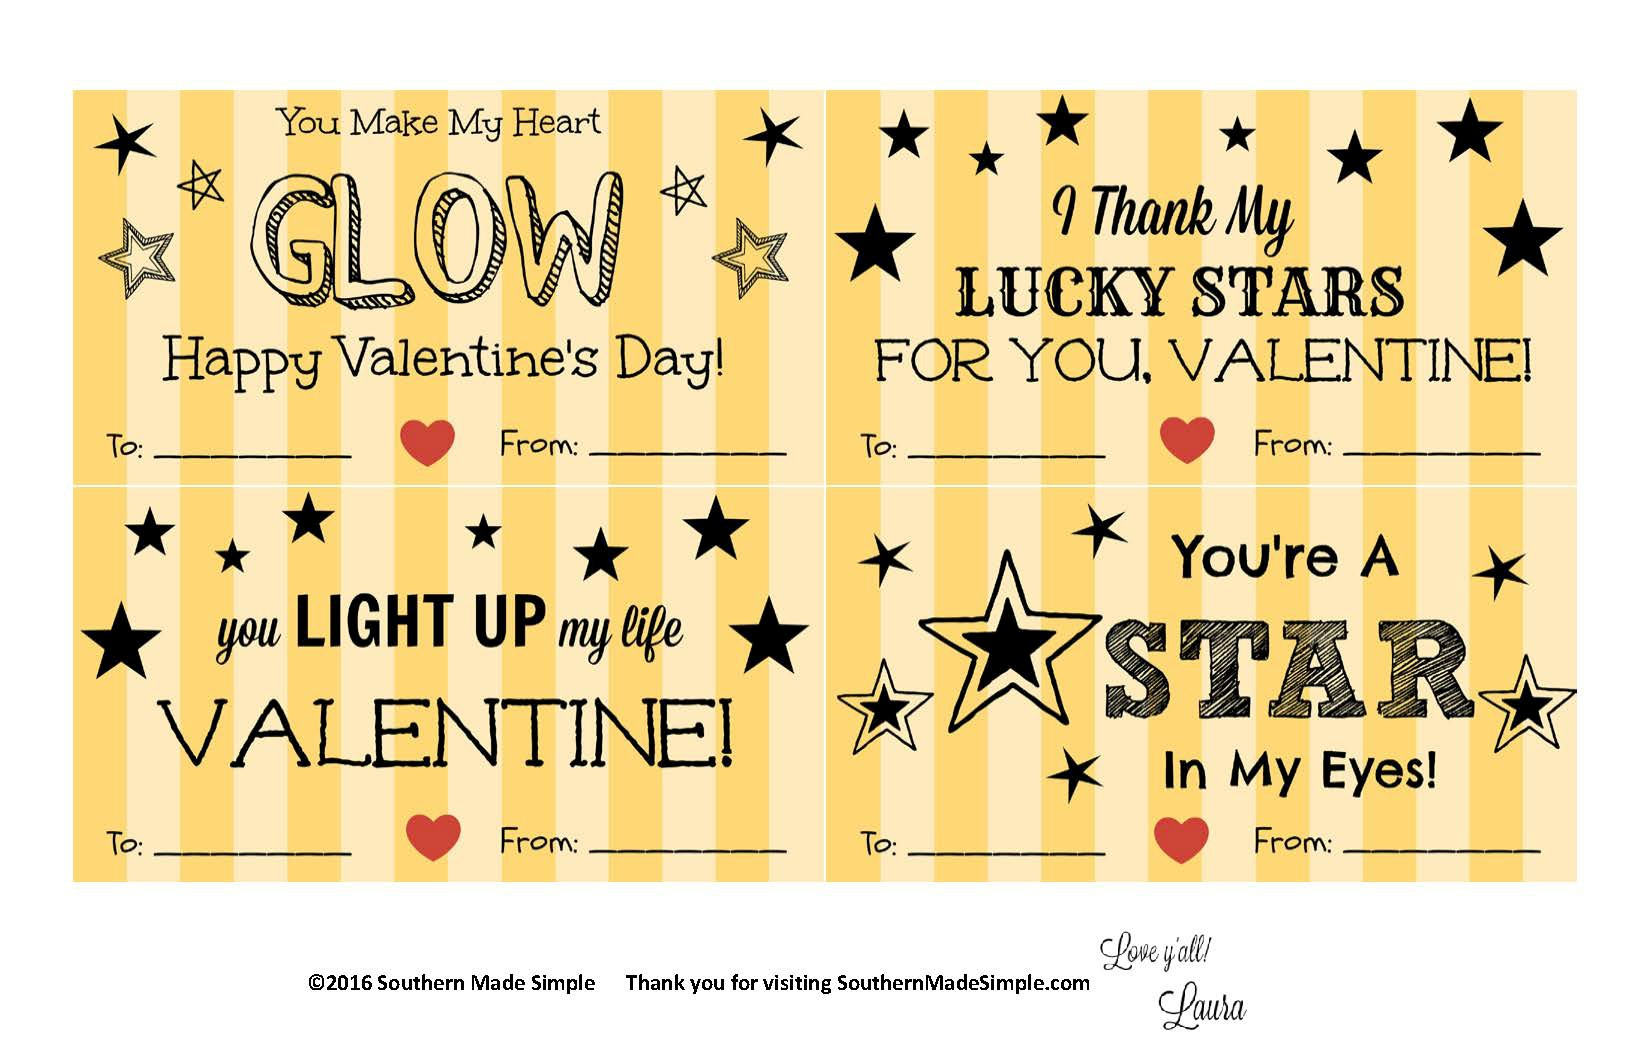 photograph relating to You Make My Heart Glow Printable identify On your own Produce My Center Shine Valentine Concept + Free of charge Printable